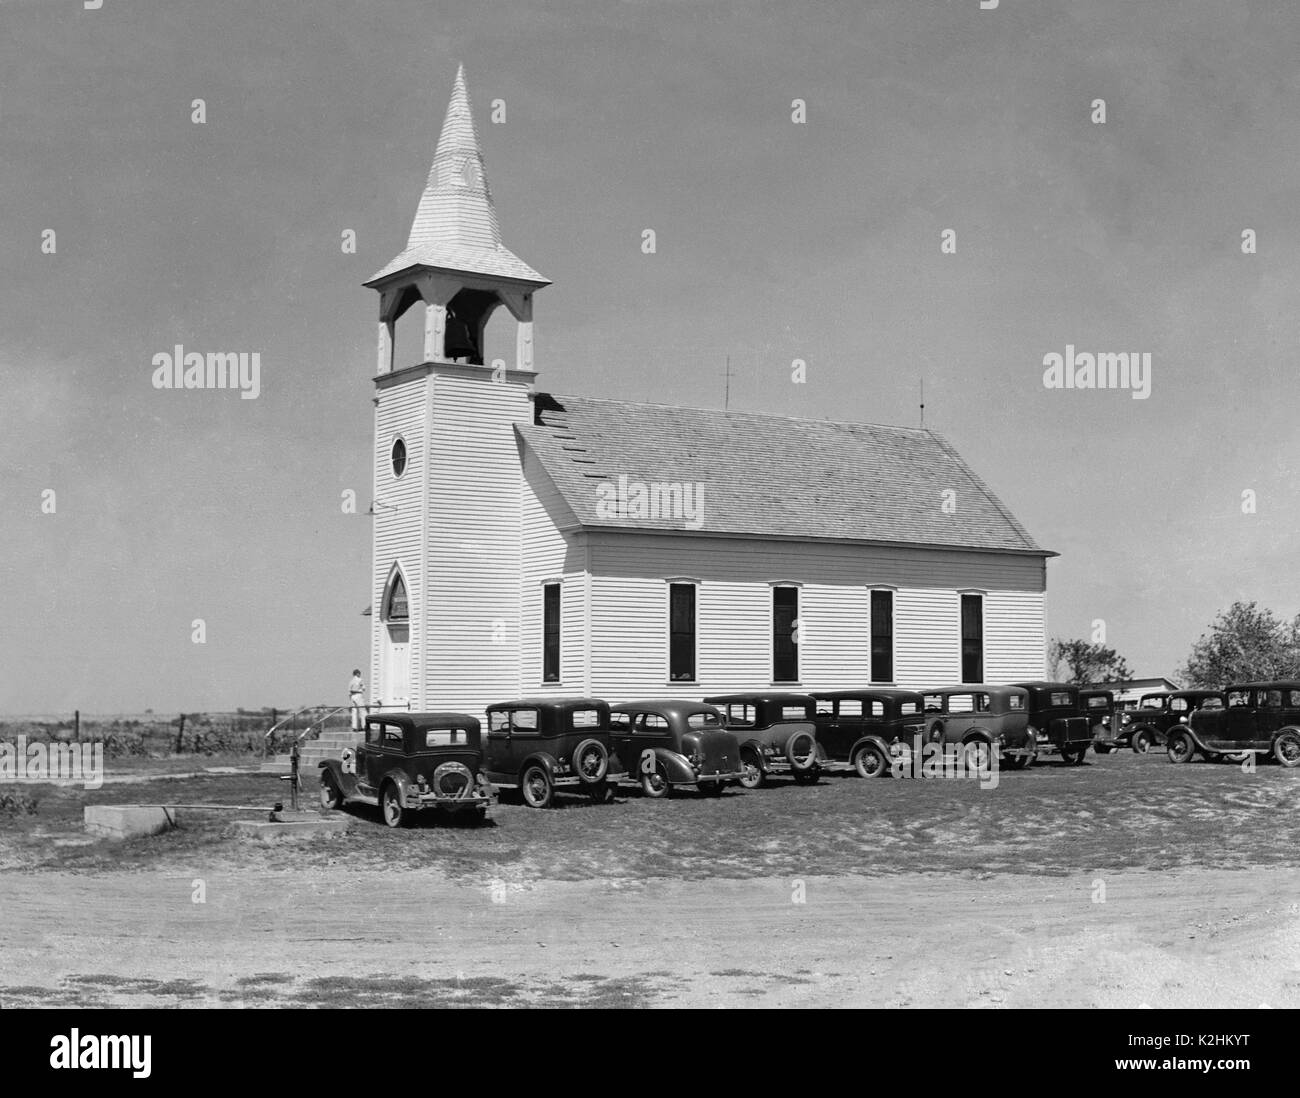 CHURCH WITH CARS PARKED IN FRONT - Stock Image